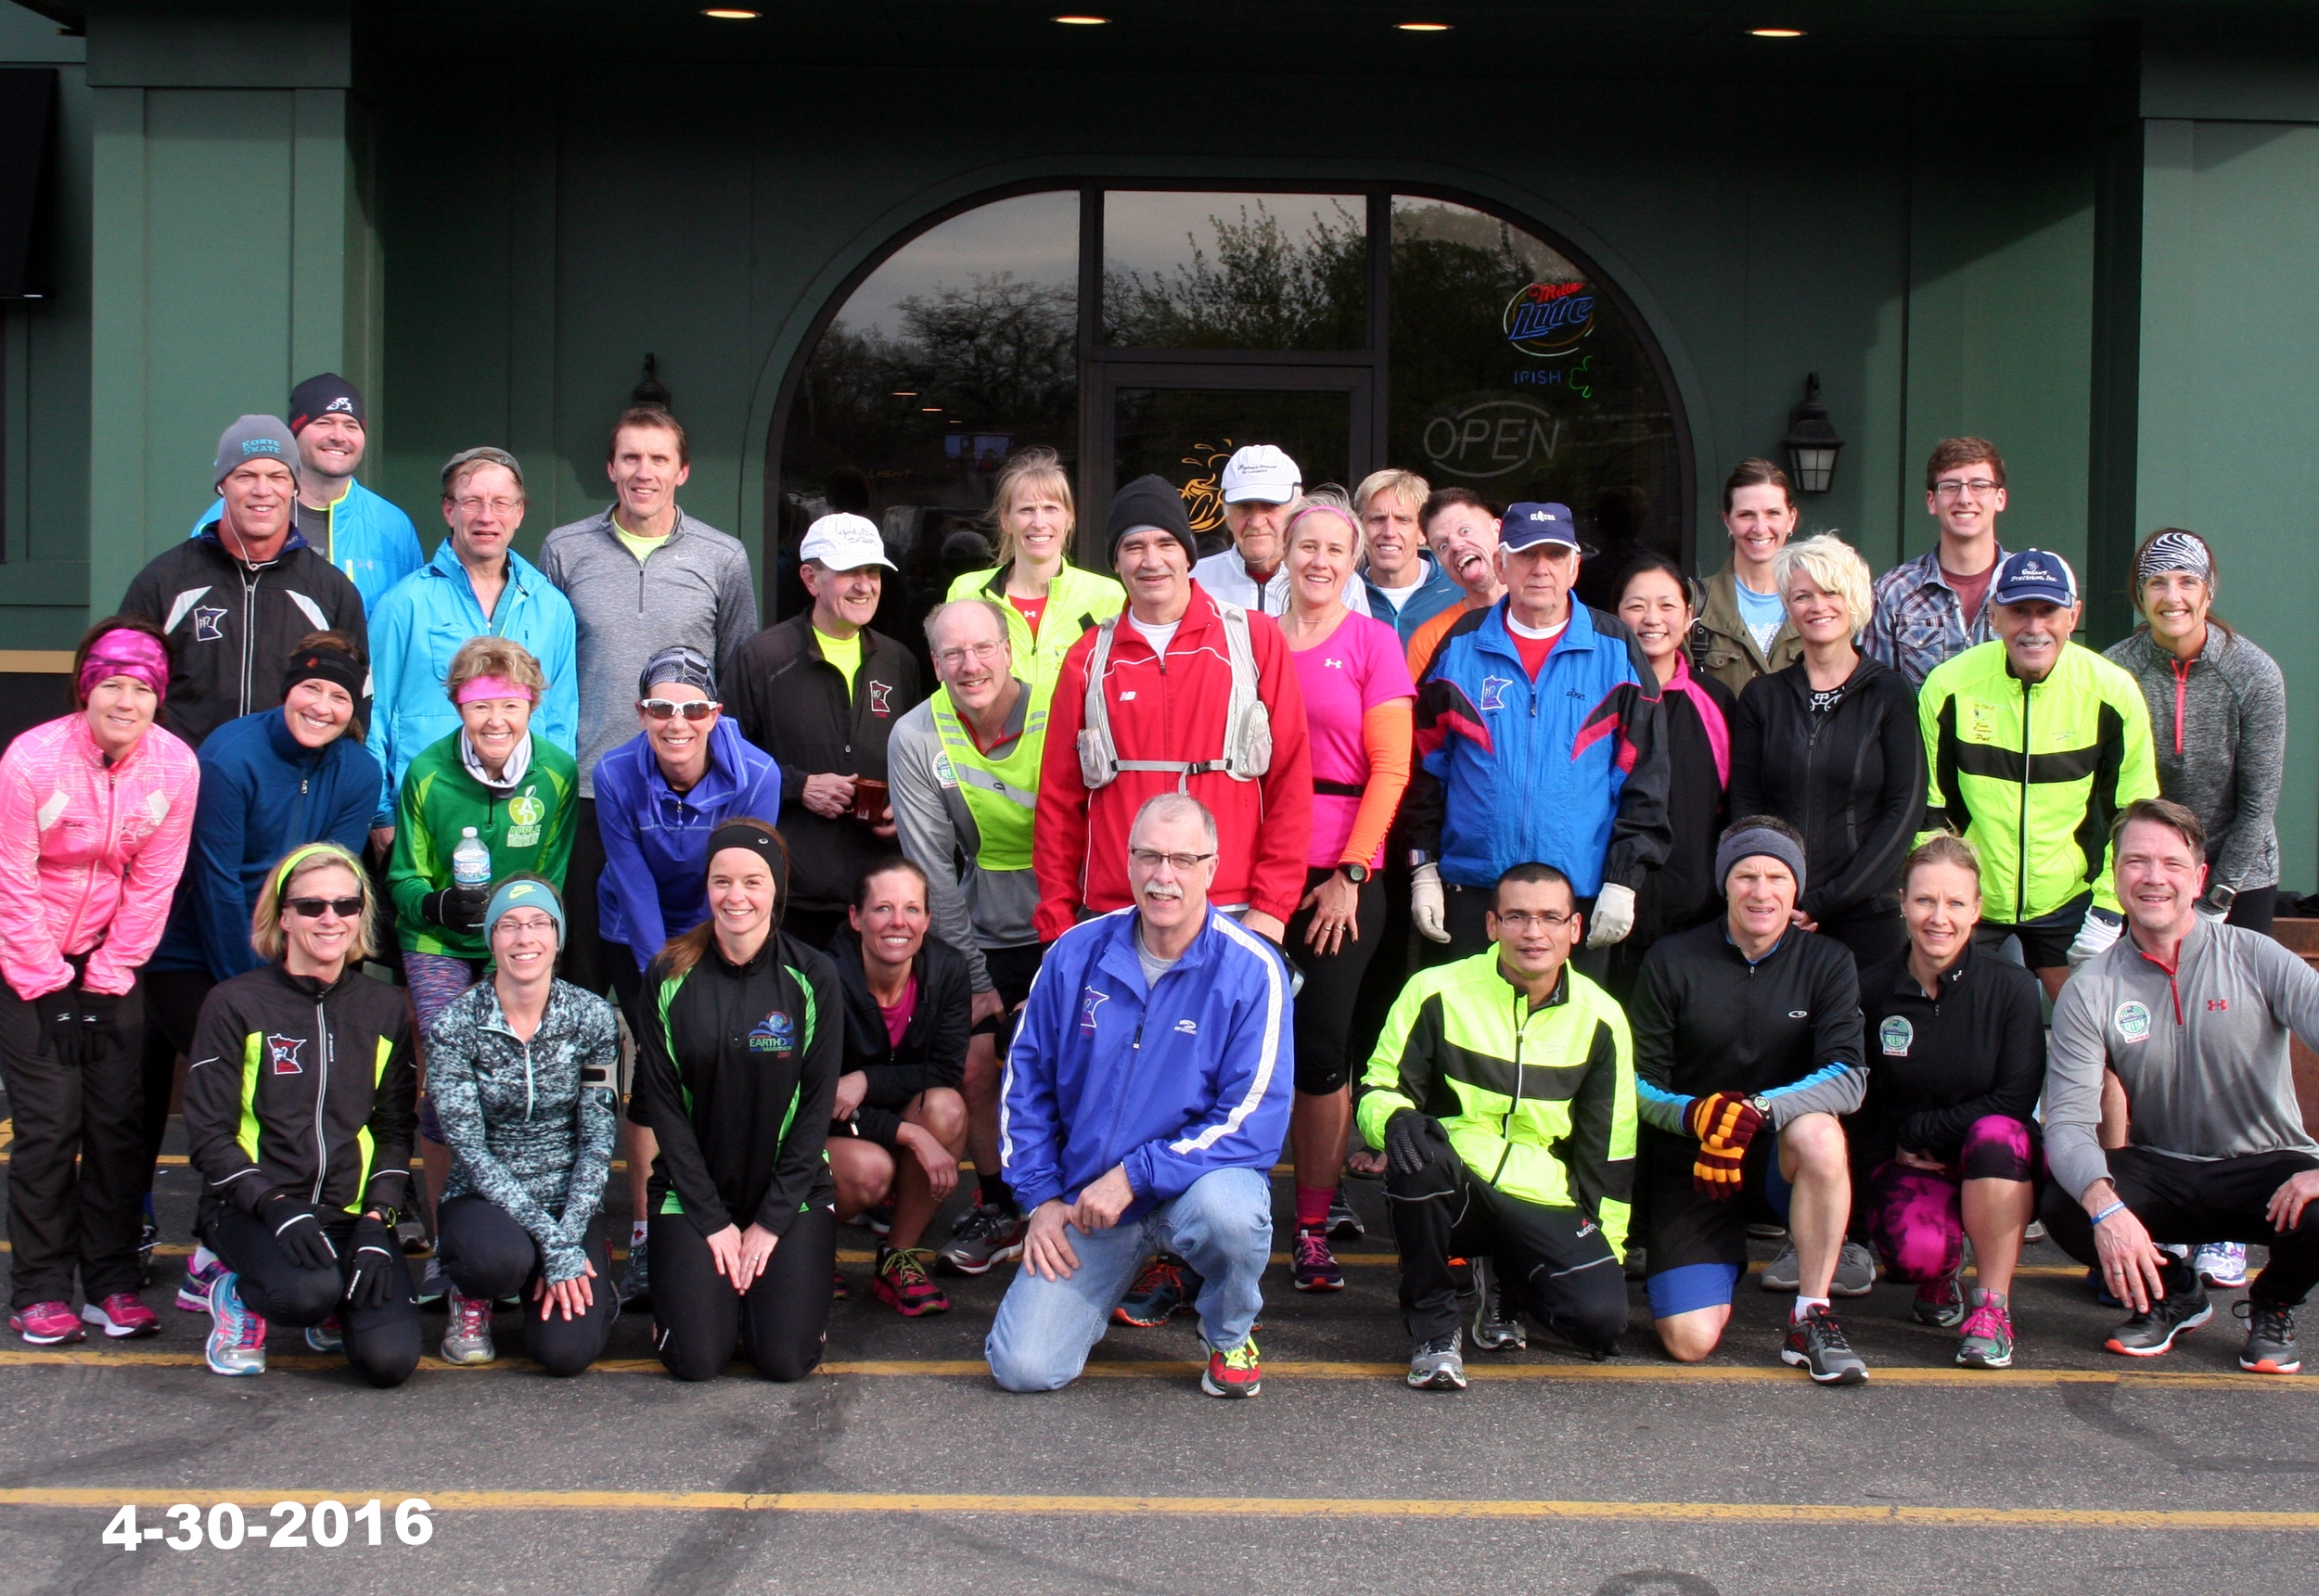 Breakfast Run 4-30-2016